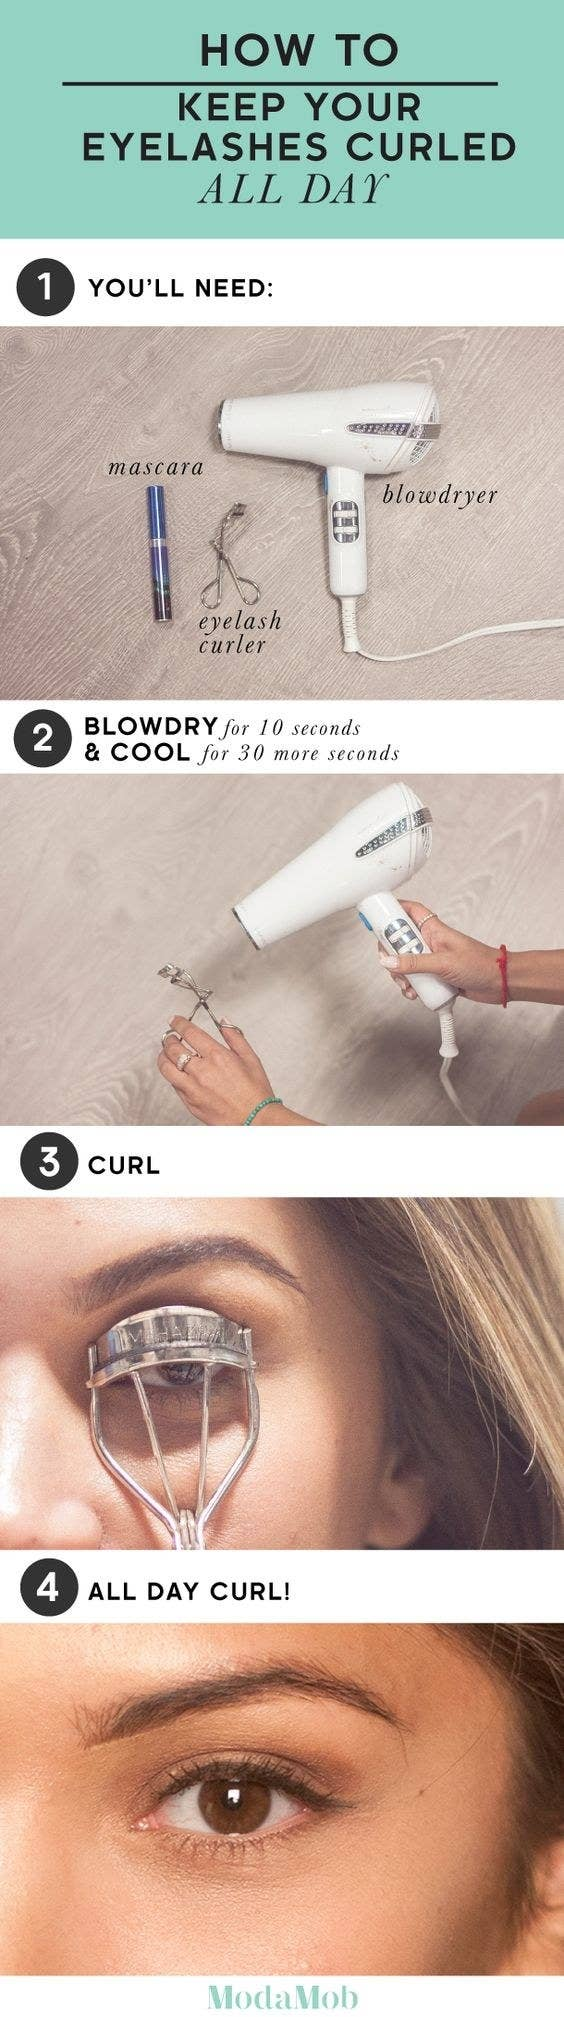 21 Tips And Tricks For Helping Your Makeup Last All Day Long